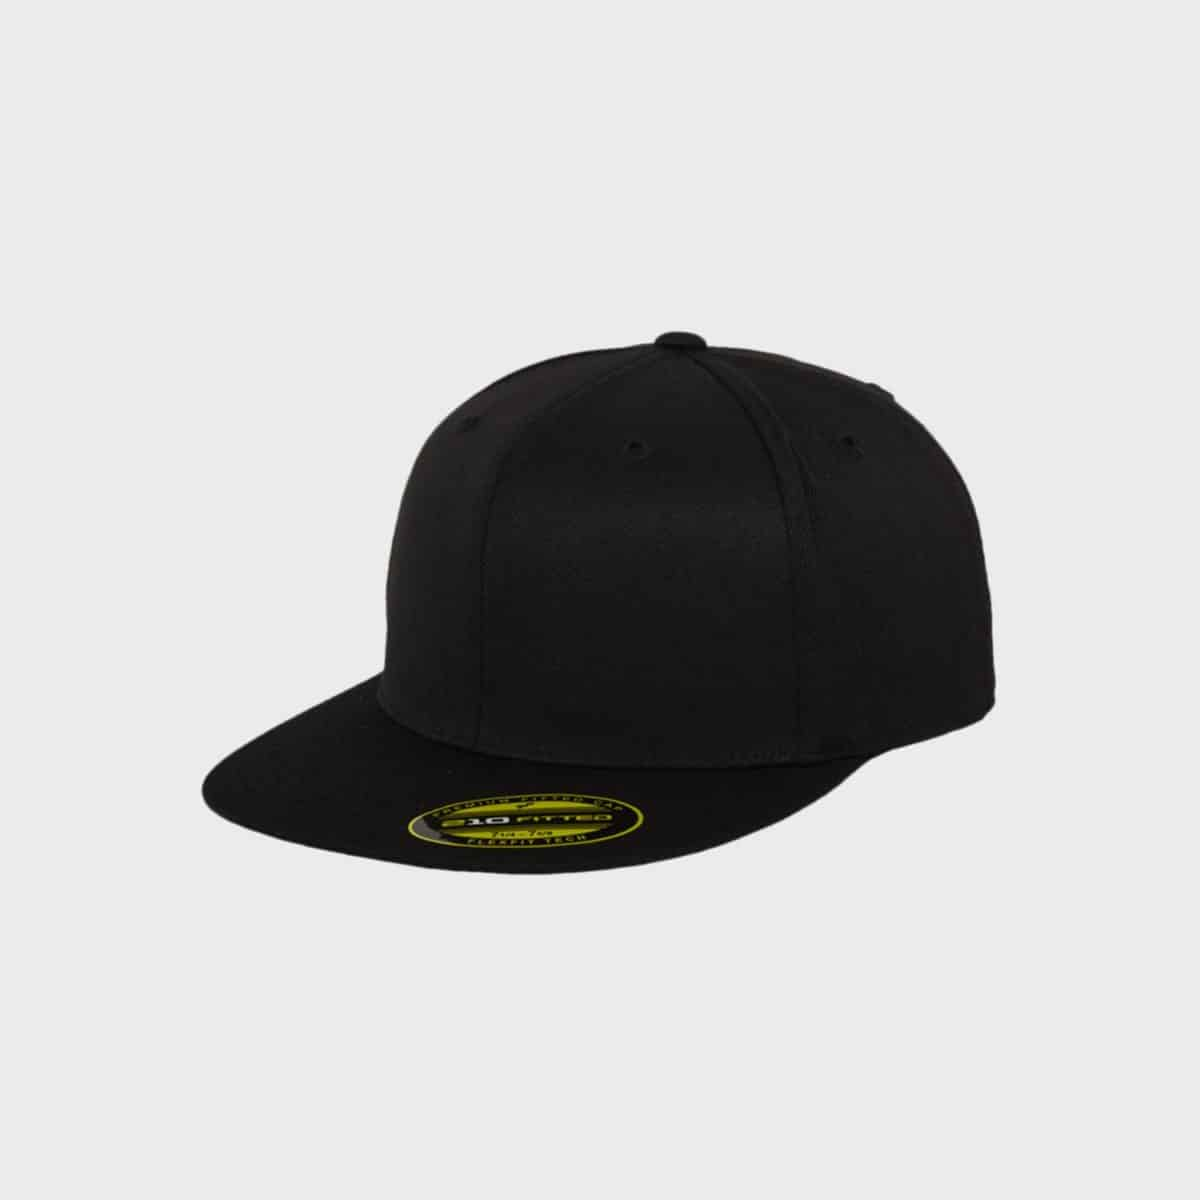 Flexfit FlexfitCaps FFE 6210 Black Front Side